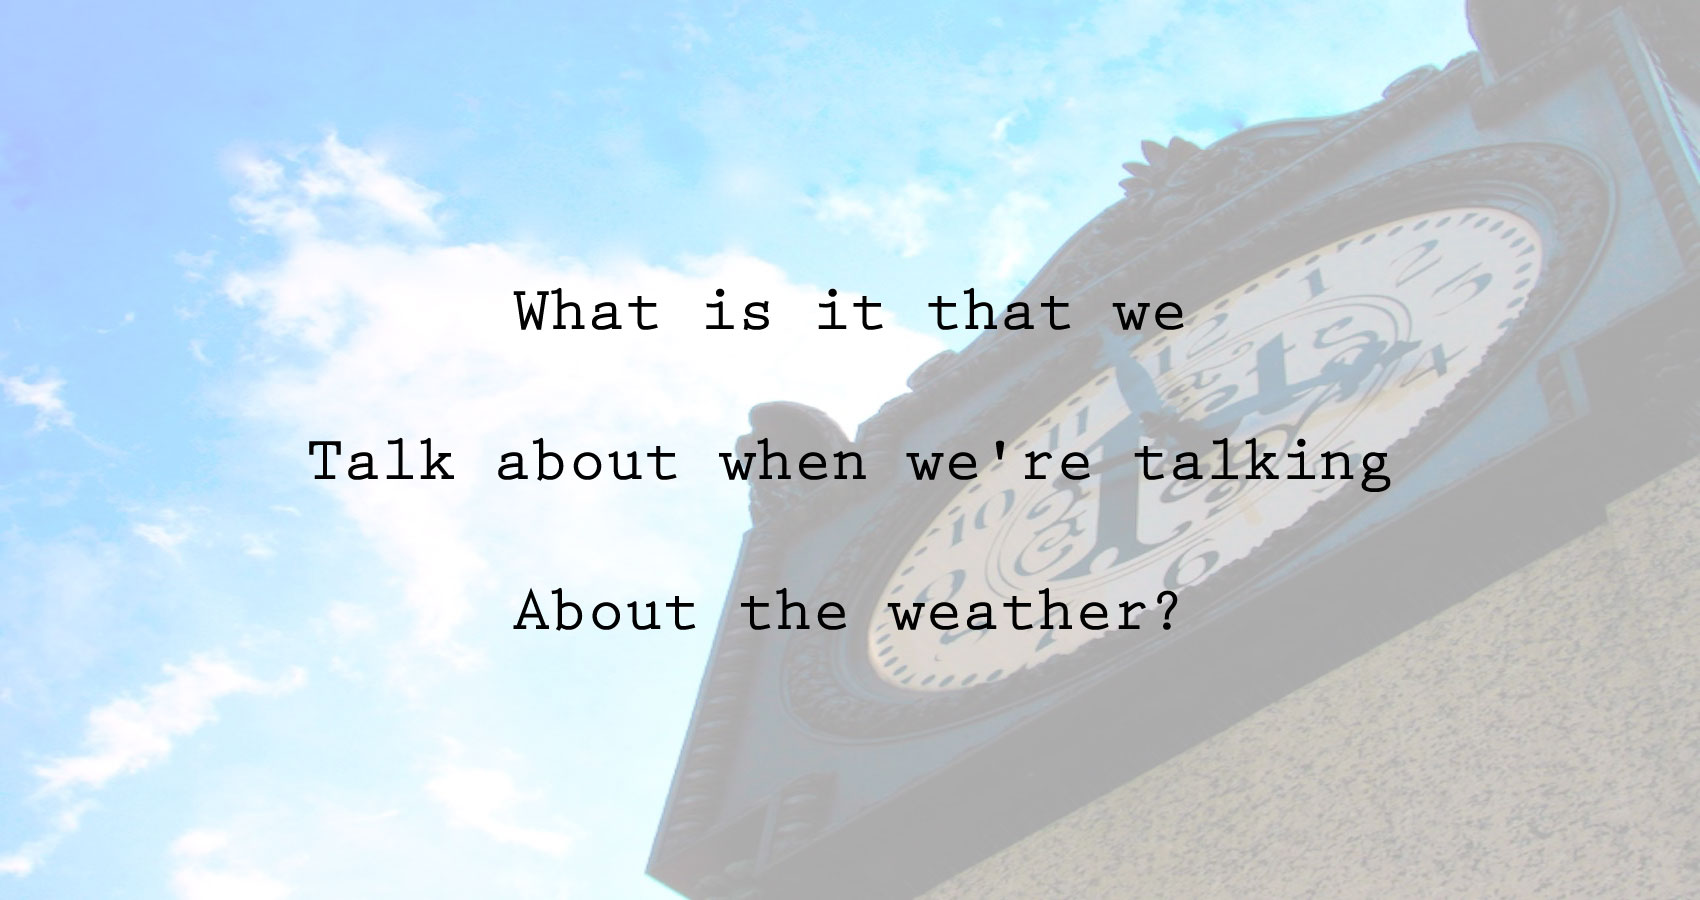 Something About Weather by Ian Michael at Spillwords.com